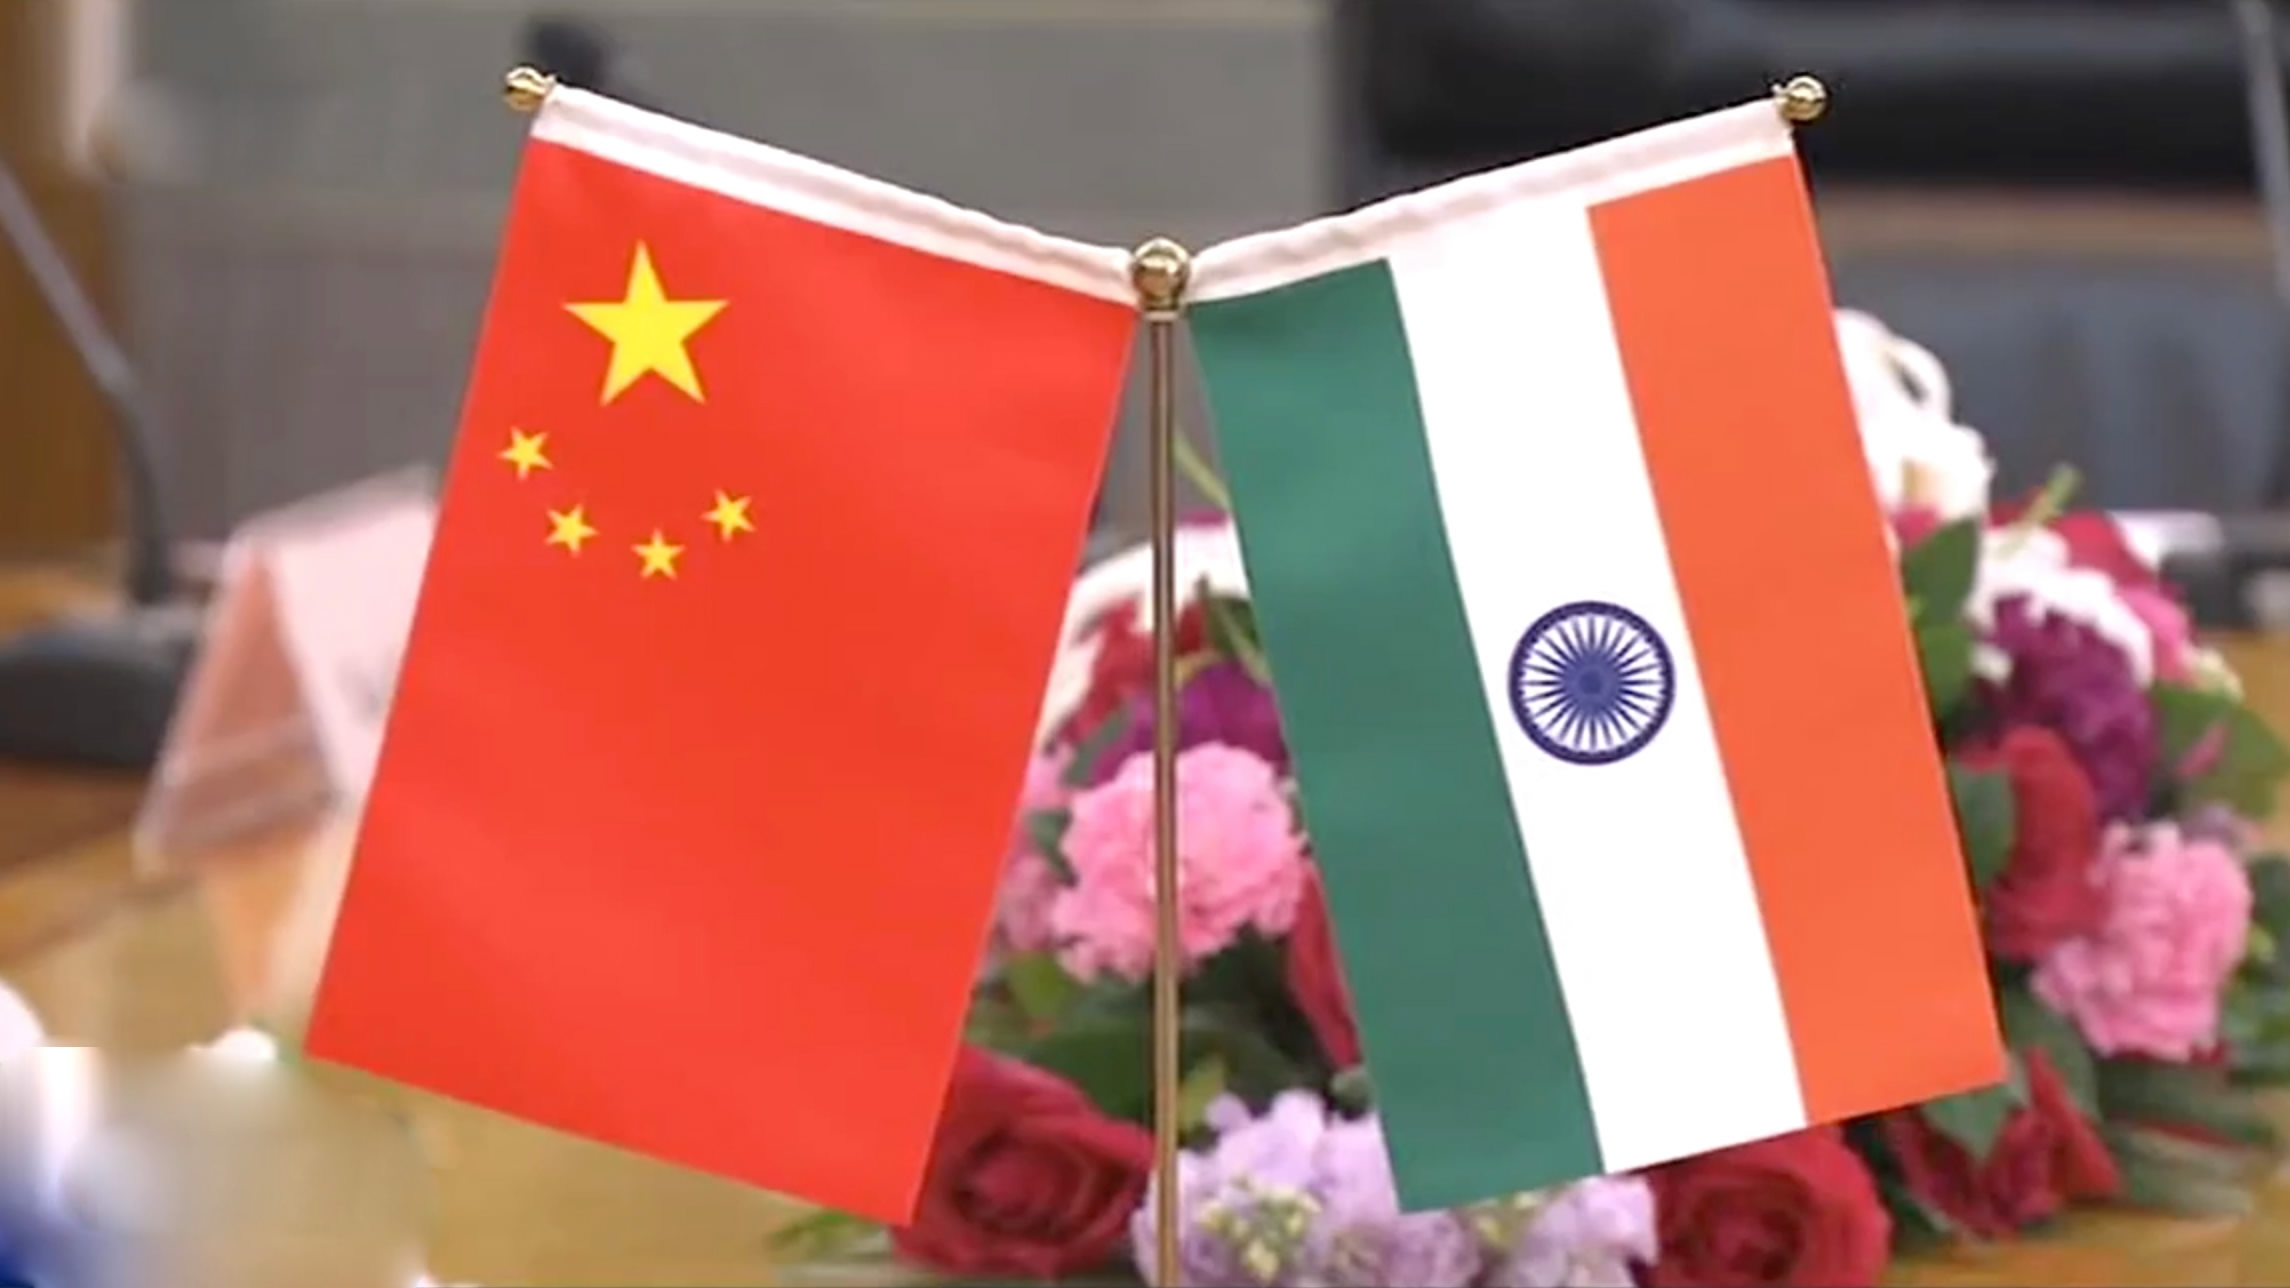 Cooperation between China, India aids world peace, prosperity: FM